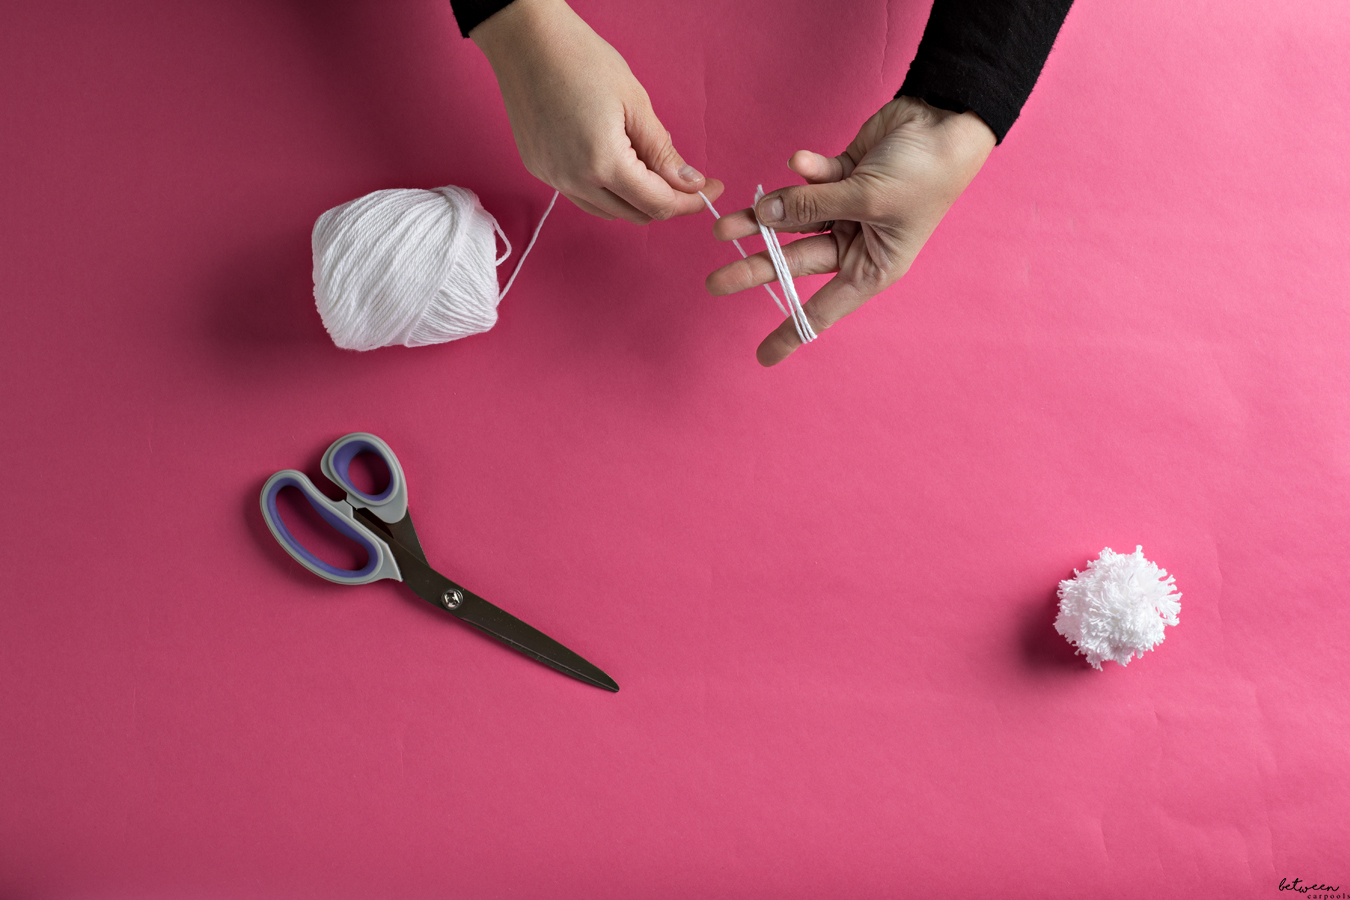 How to Make Your Own Pom Poms. It's easy to make your own pom poms to adorn any costume using simply a scissor and yarn.